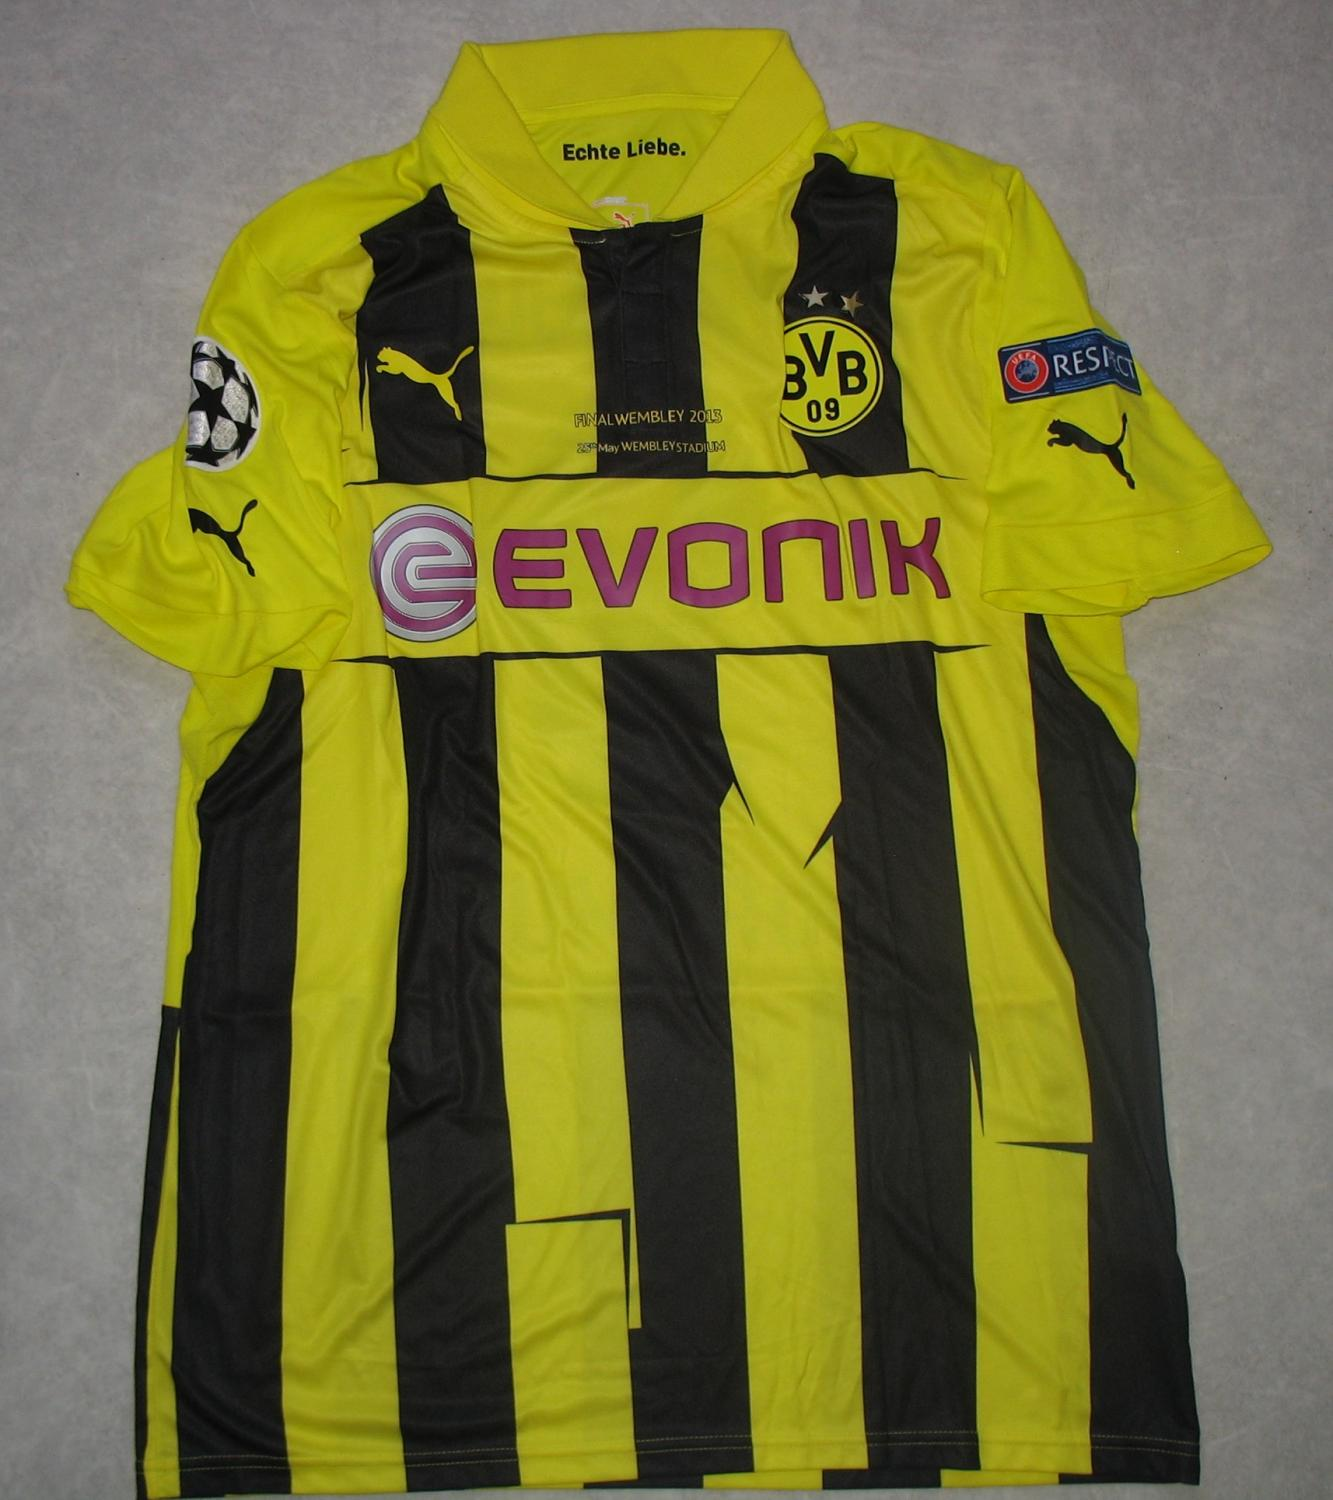 Champions League Final 2012: Borussia Dortmund Cup Shirt Football Shirt 2012